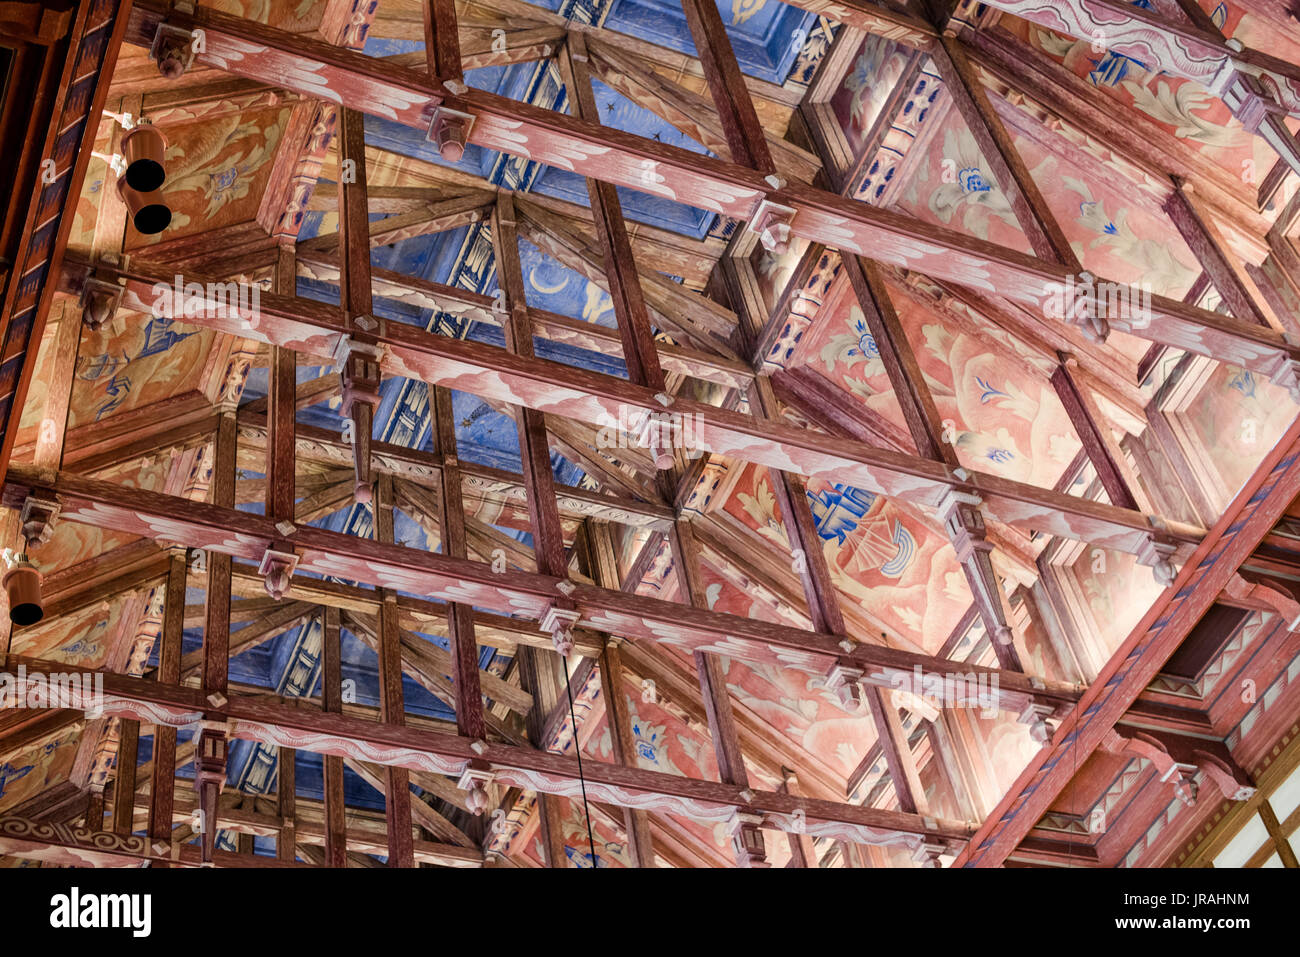 Council Chamber ceiling of Stockholm City Hall, Sweden - Stock Image